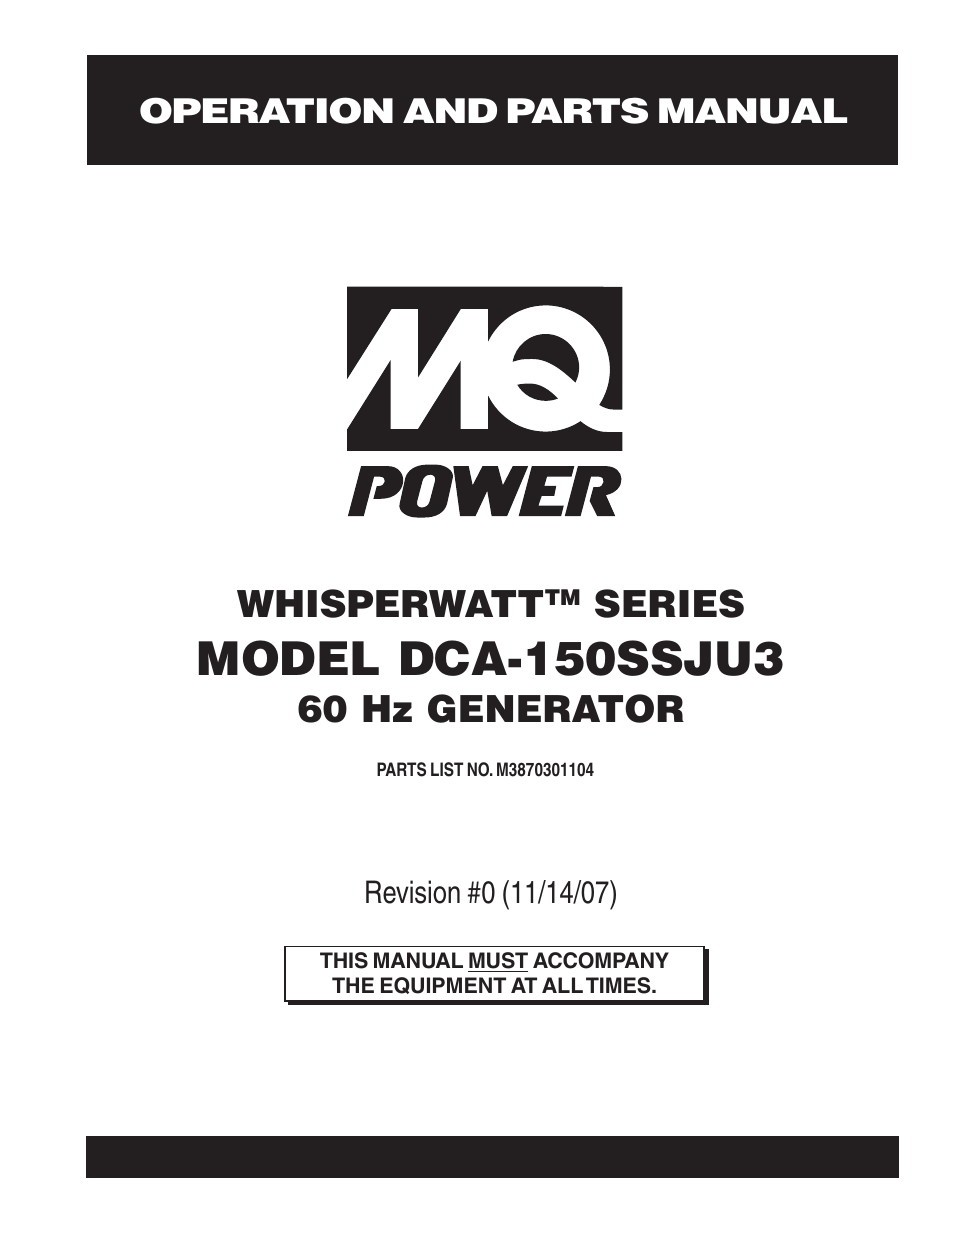 Multiquip MQ Power Whisperwatt 60 Hz Generator DCA